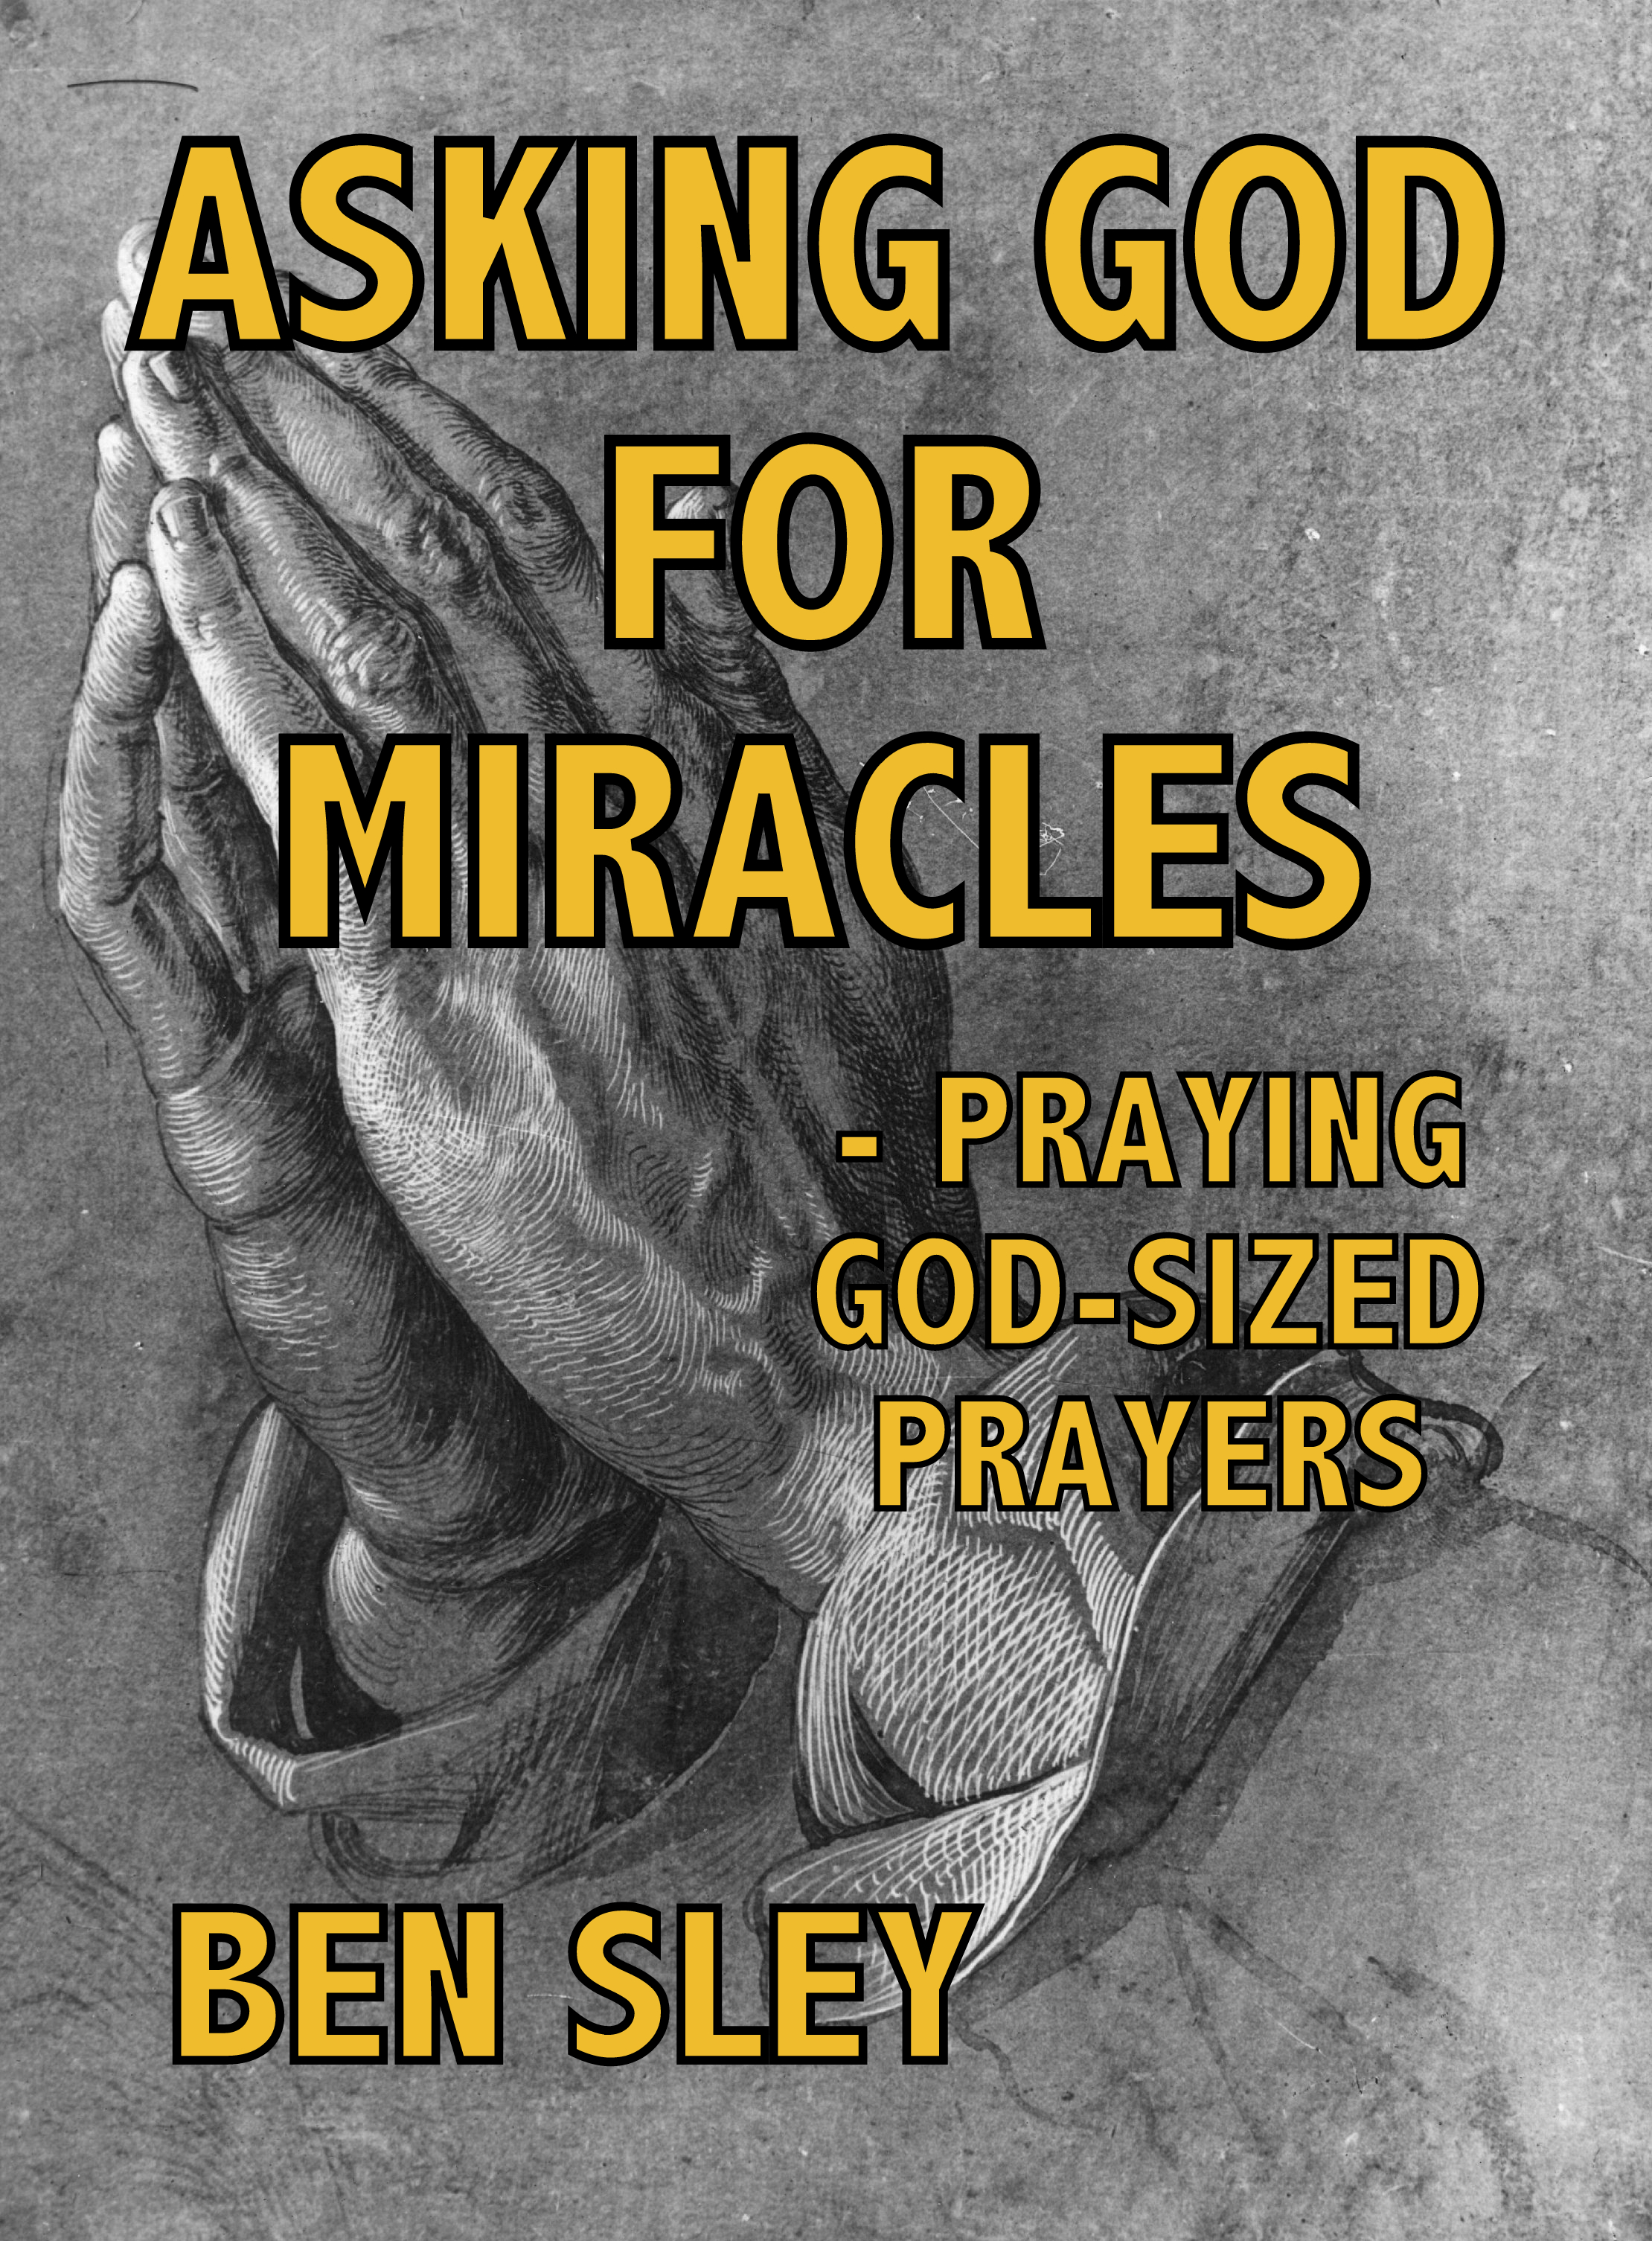 Asking God For Miracles - Praying God-sized Prayers, an Ebook by Ben Sley